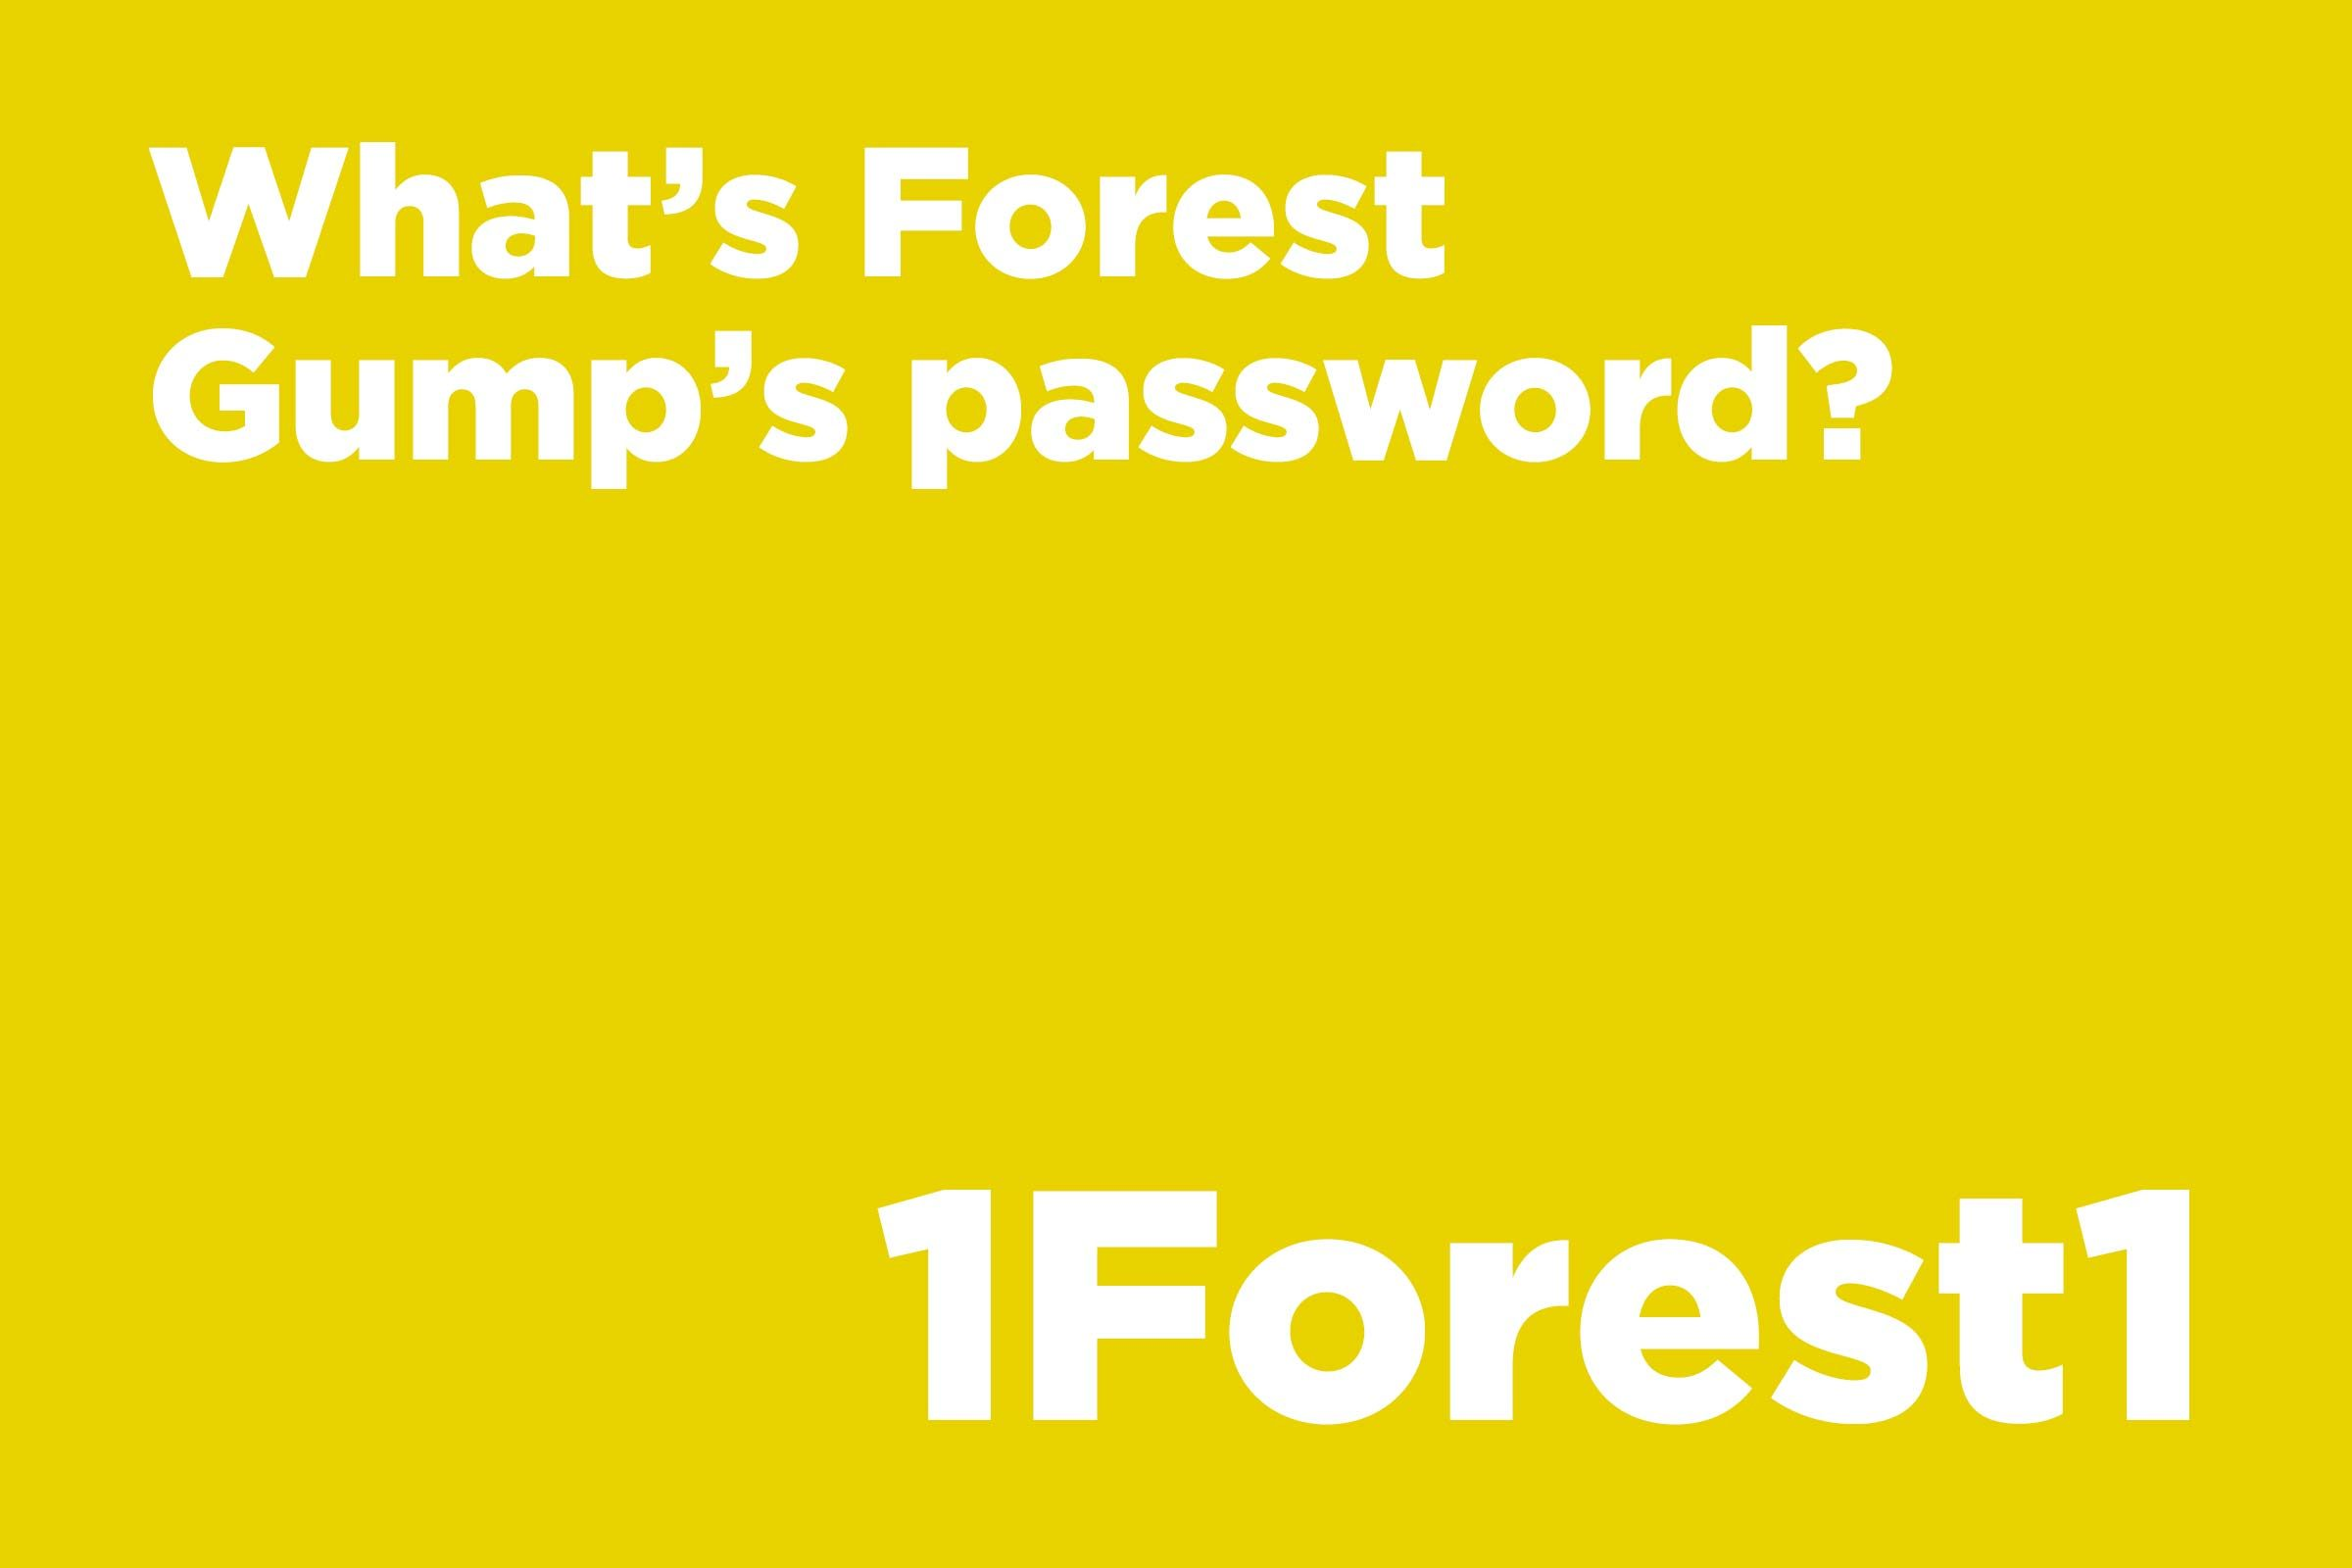 What's Forest Gump's password?